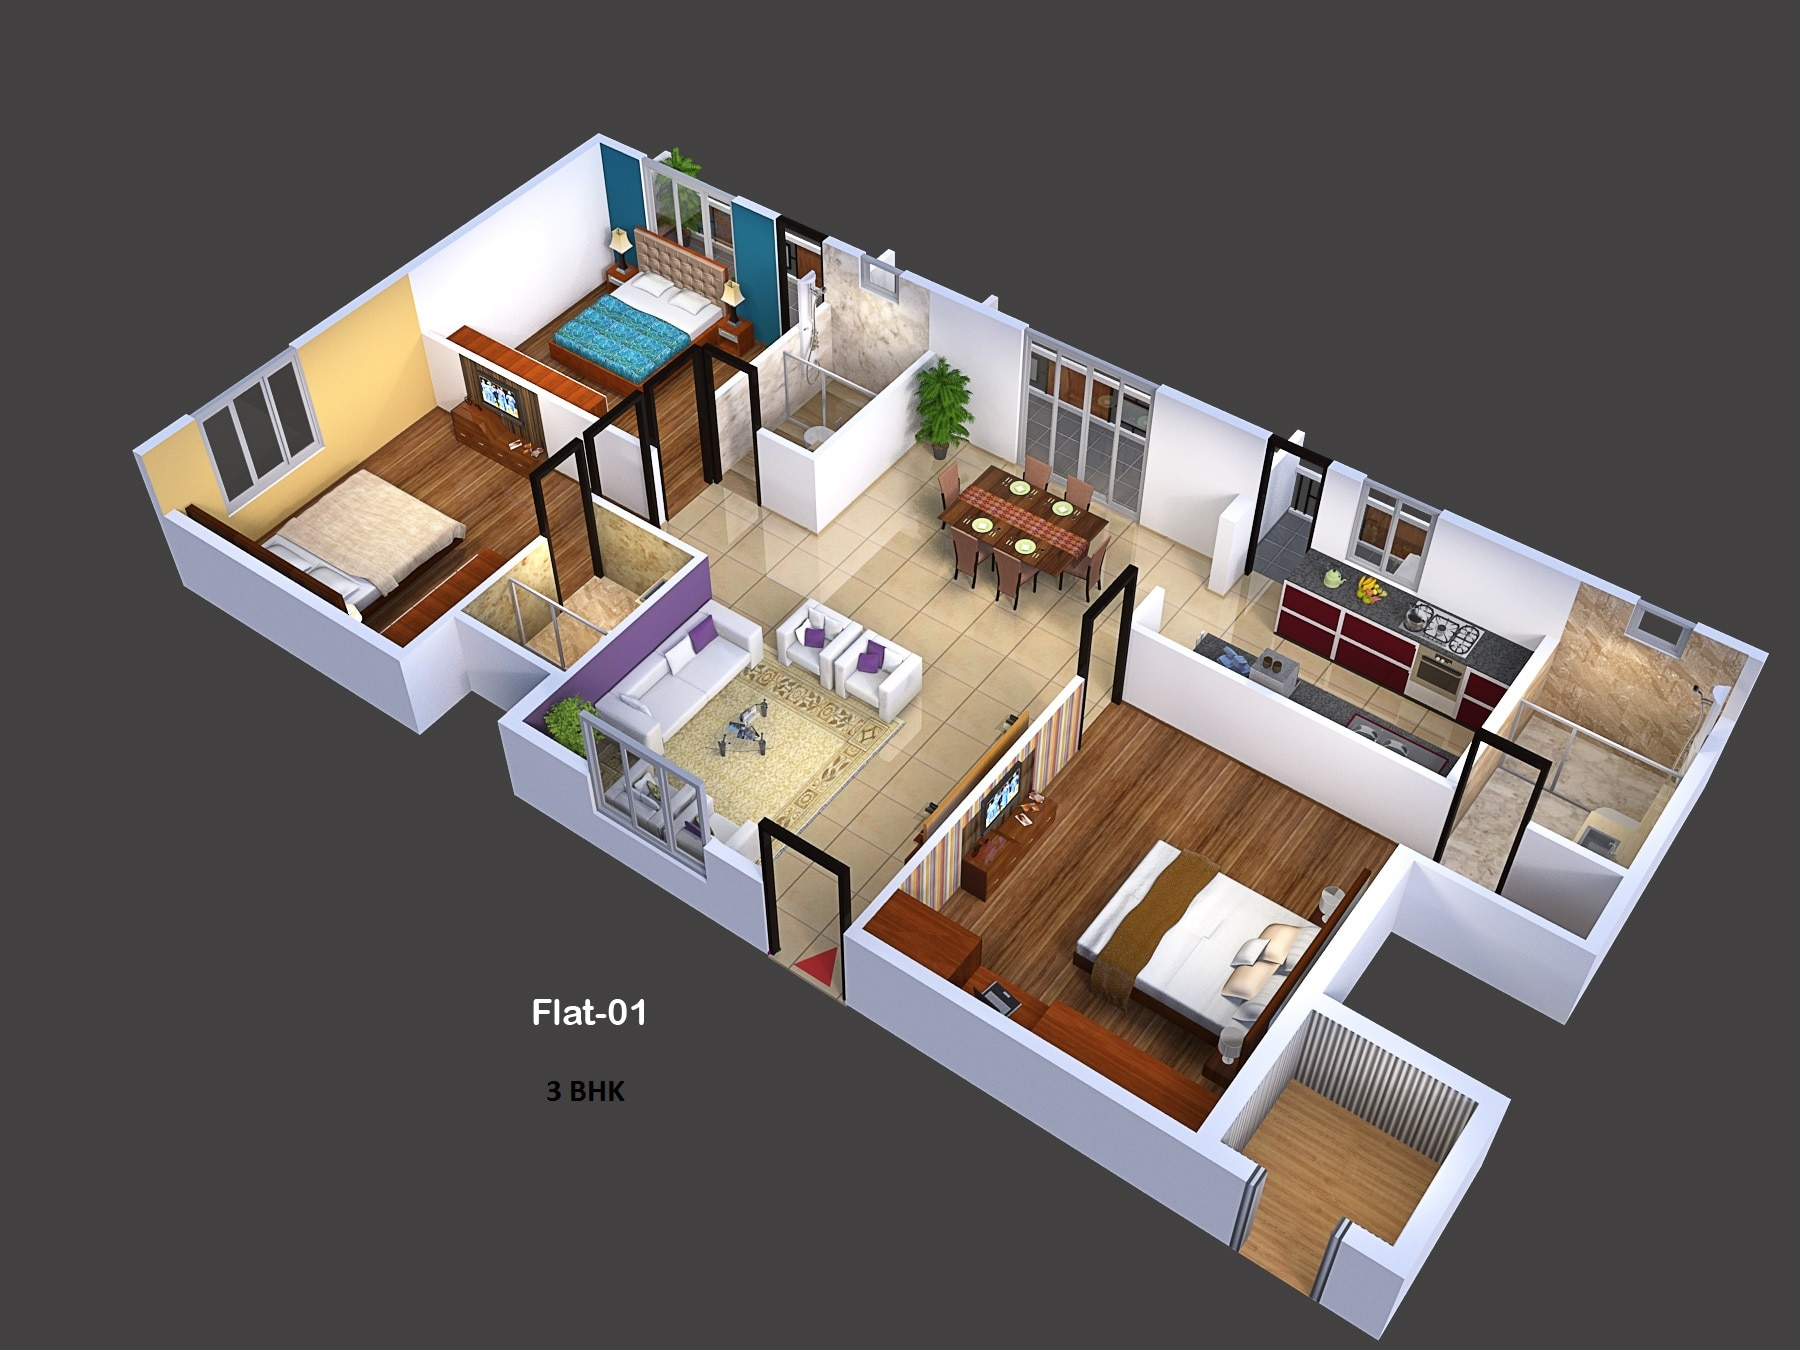 LOVELY 4 BHK APARTMENT COMES WITH 3 BATHROOMS, LIVING, DINING, POOJA, BALCONIES AND SMALL STORE ROOM. ALL APARTMENTS COMES WITH BDA KHATHA.